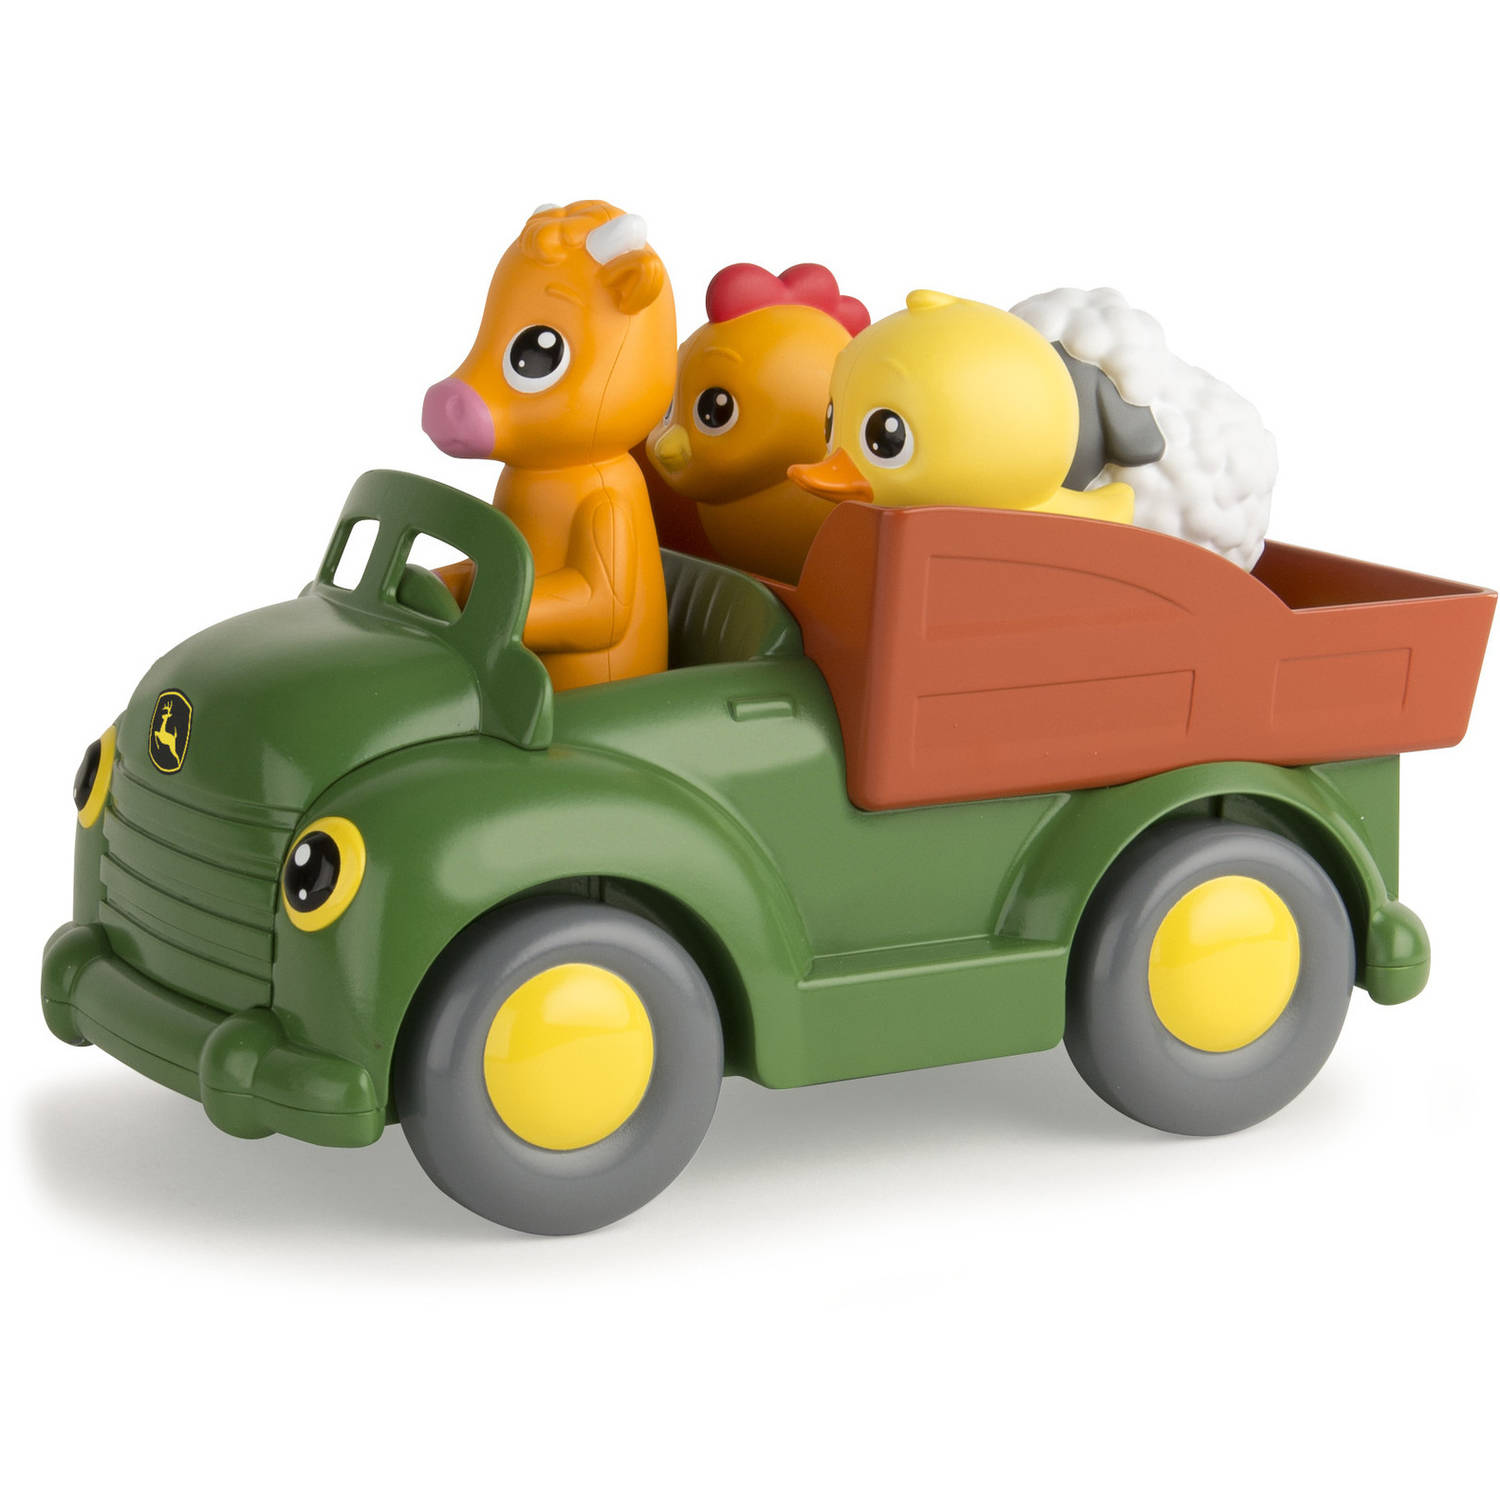 John Deere Learn 'n Pop Farmyard Friends